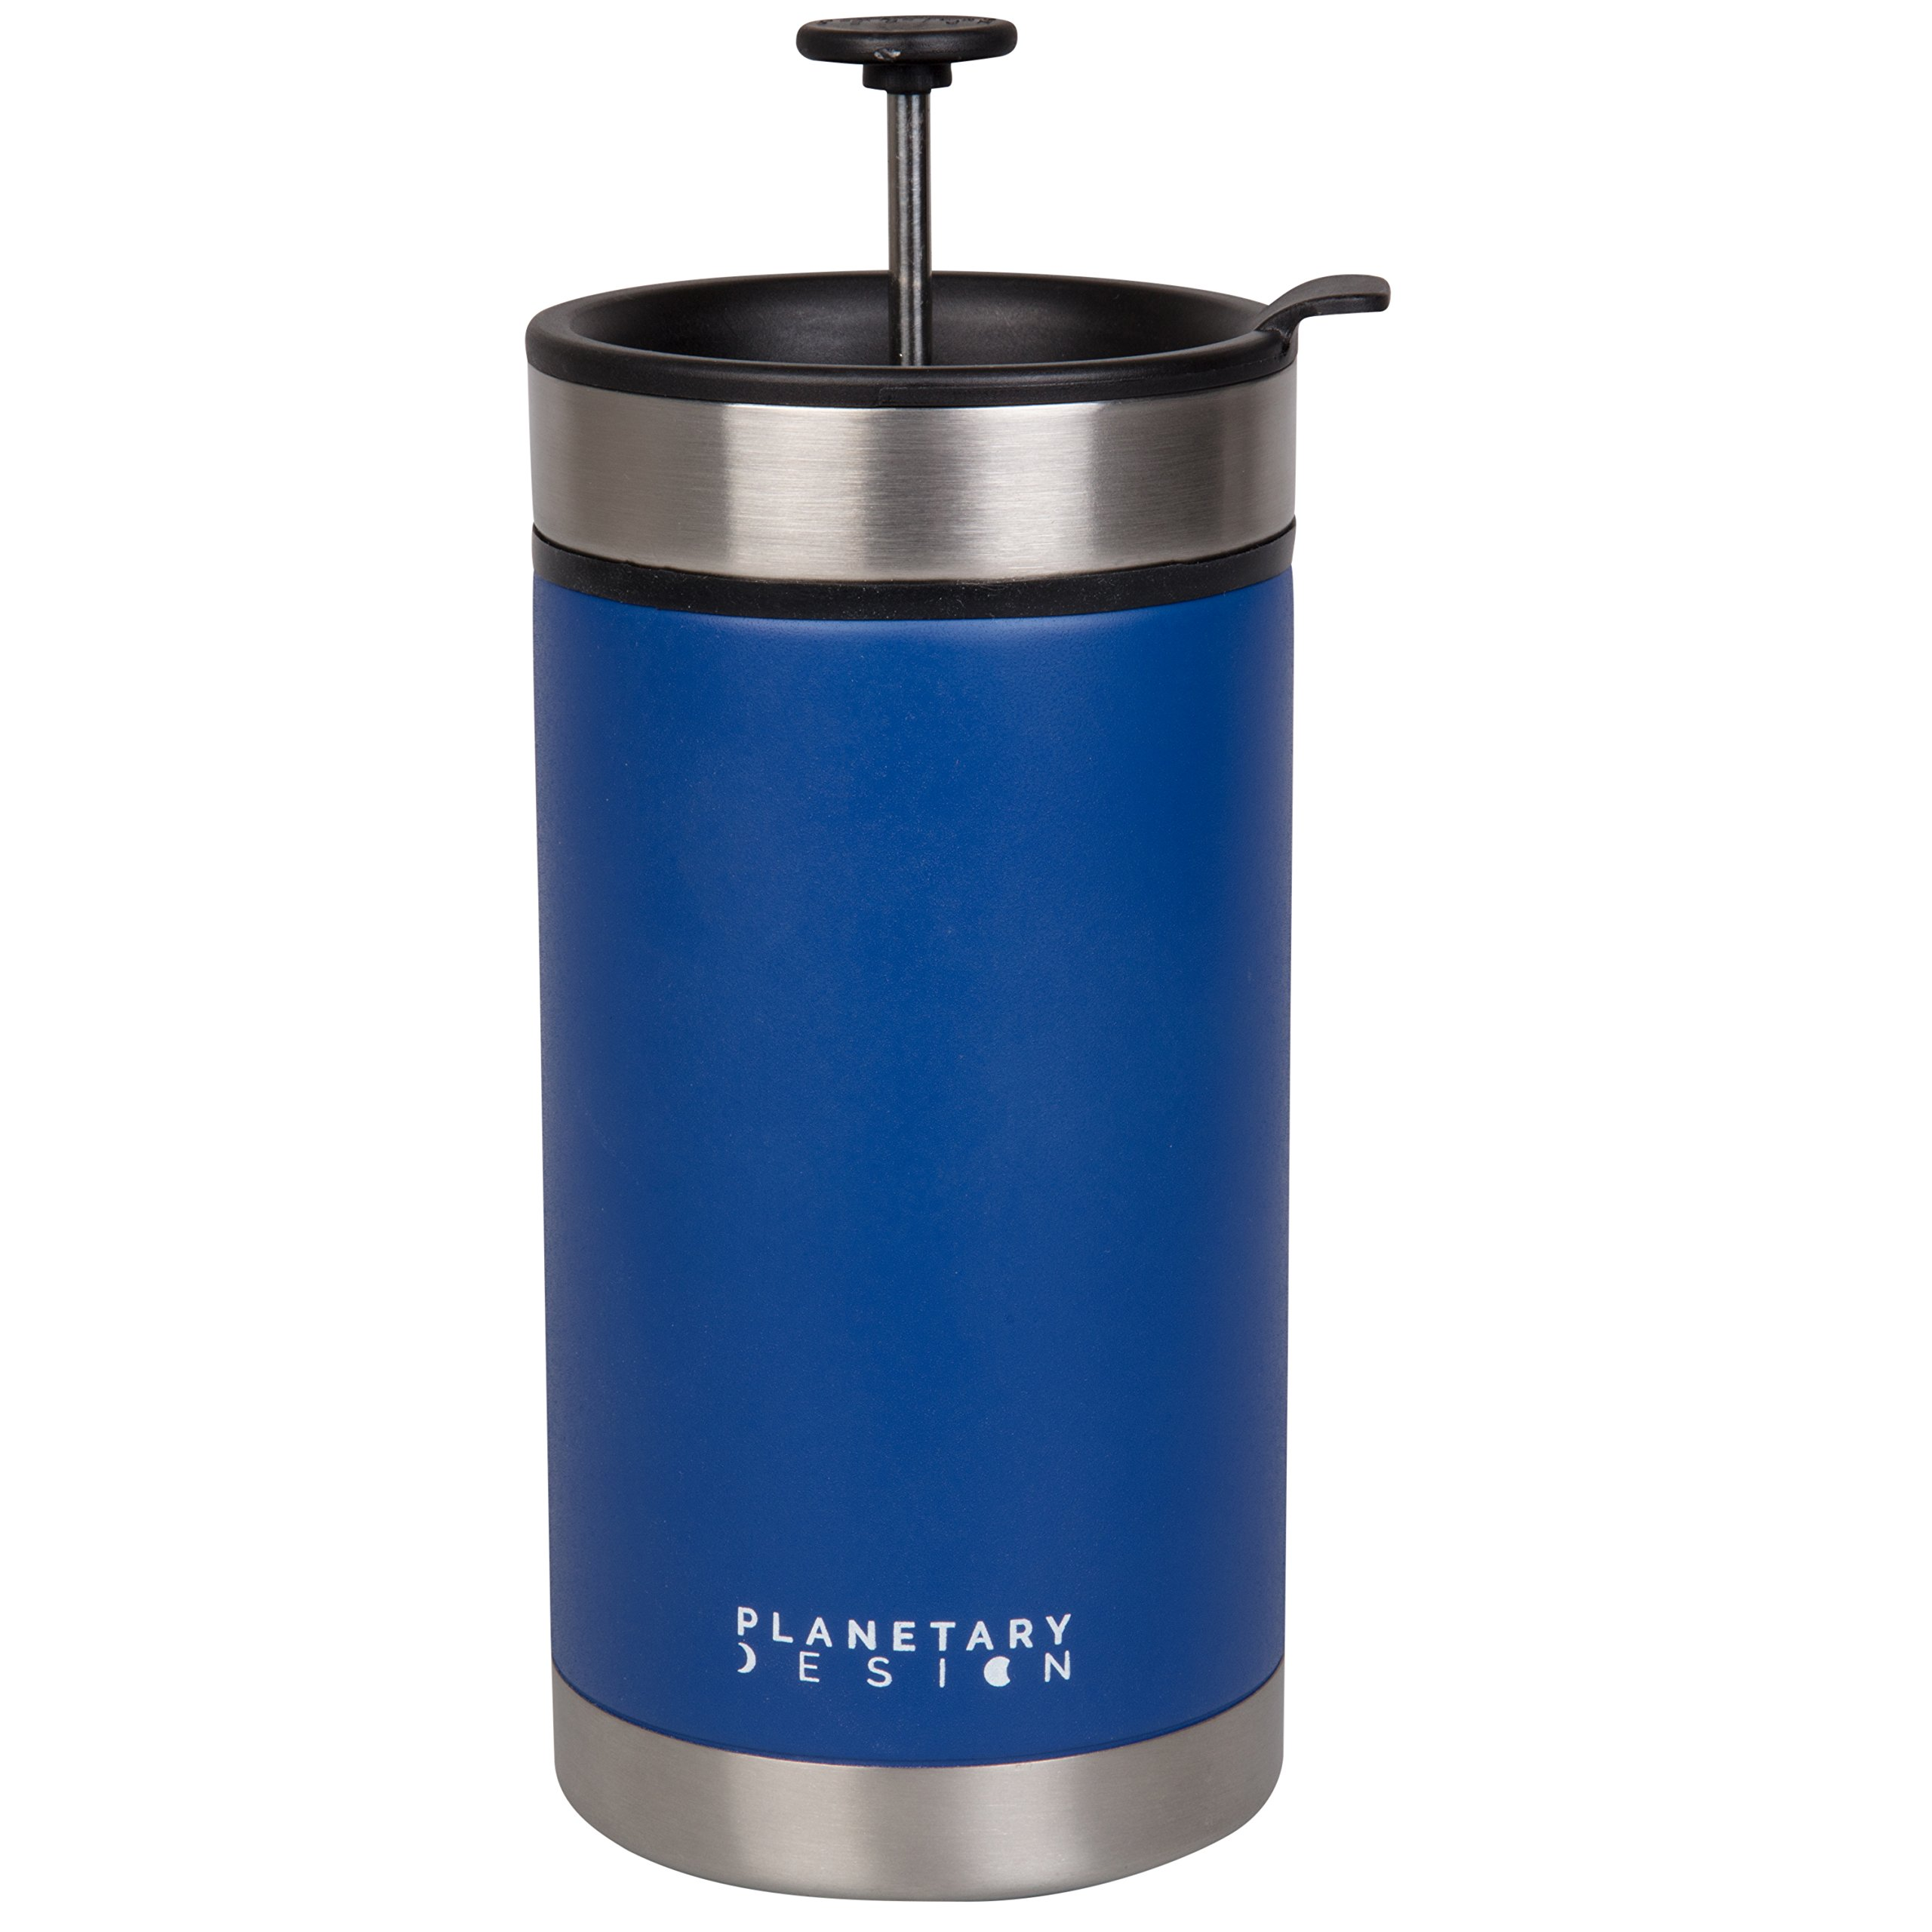 Steel Toe French Press Coffee Travel Mug with Brü-Stop Technology - 20 oz - Stainless Steel with Non-Slip Texture - Mountain Lake Blue by Planetary Design